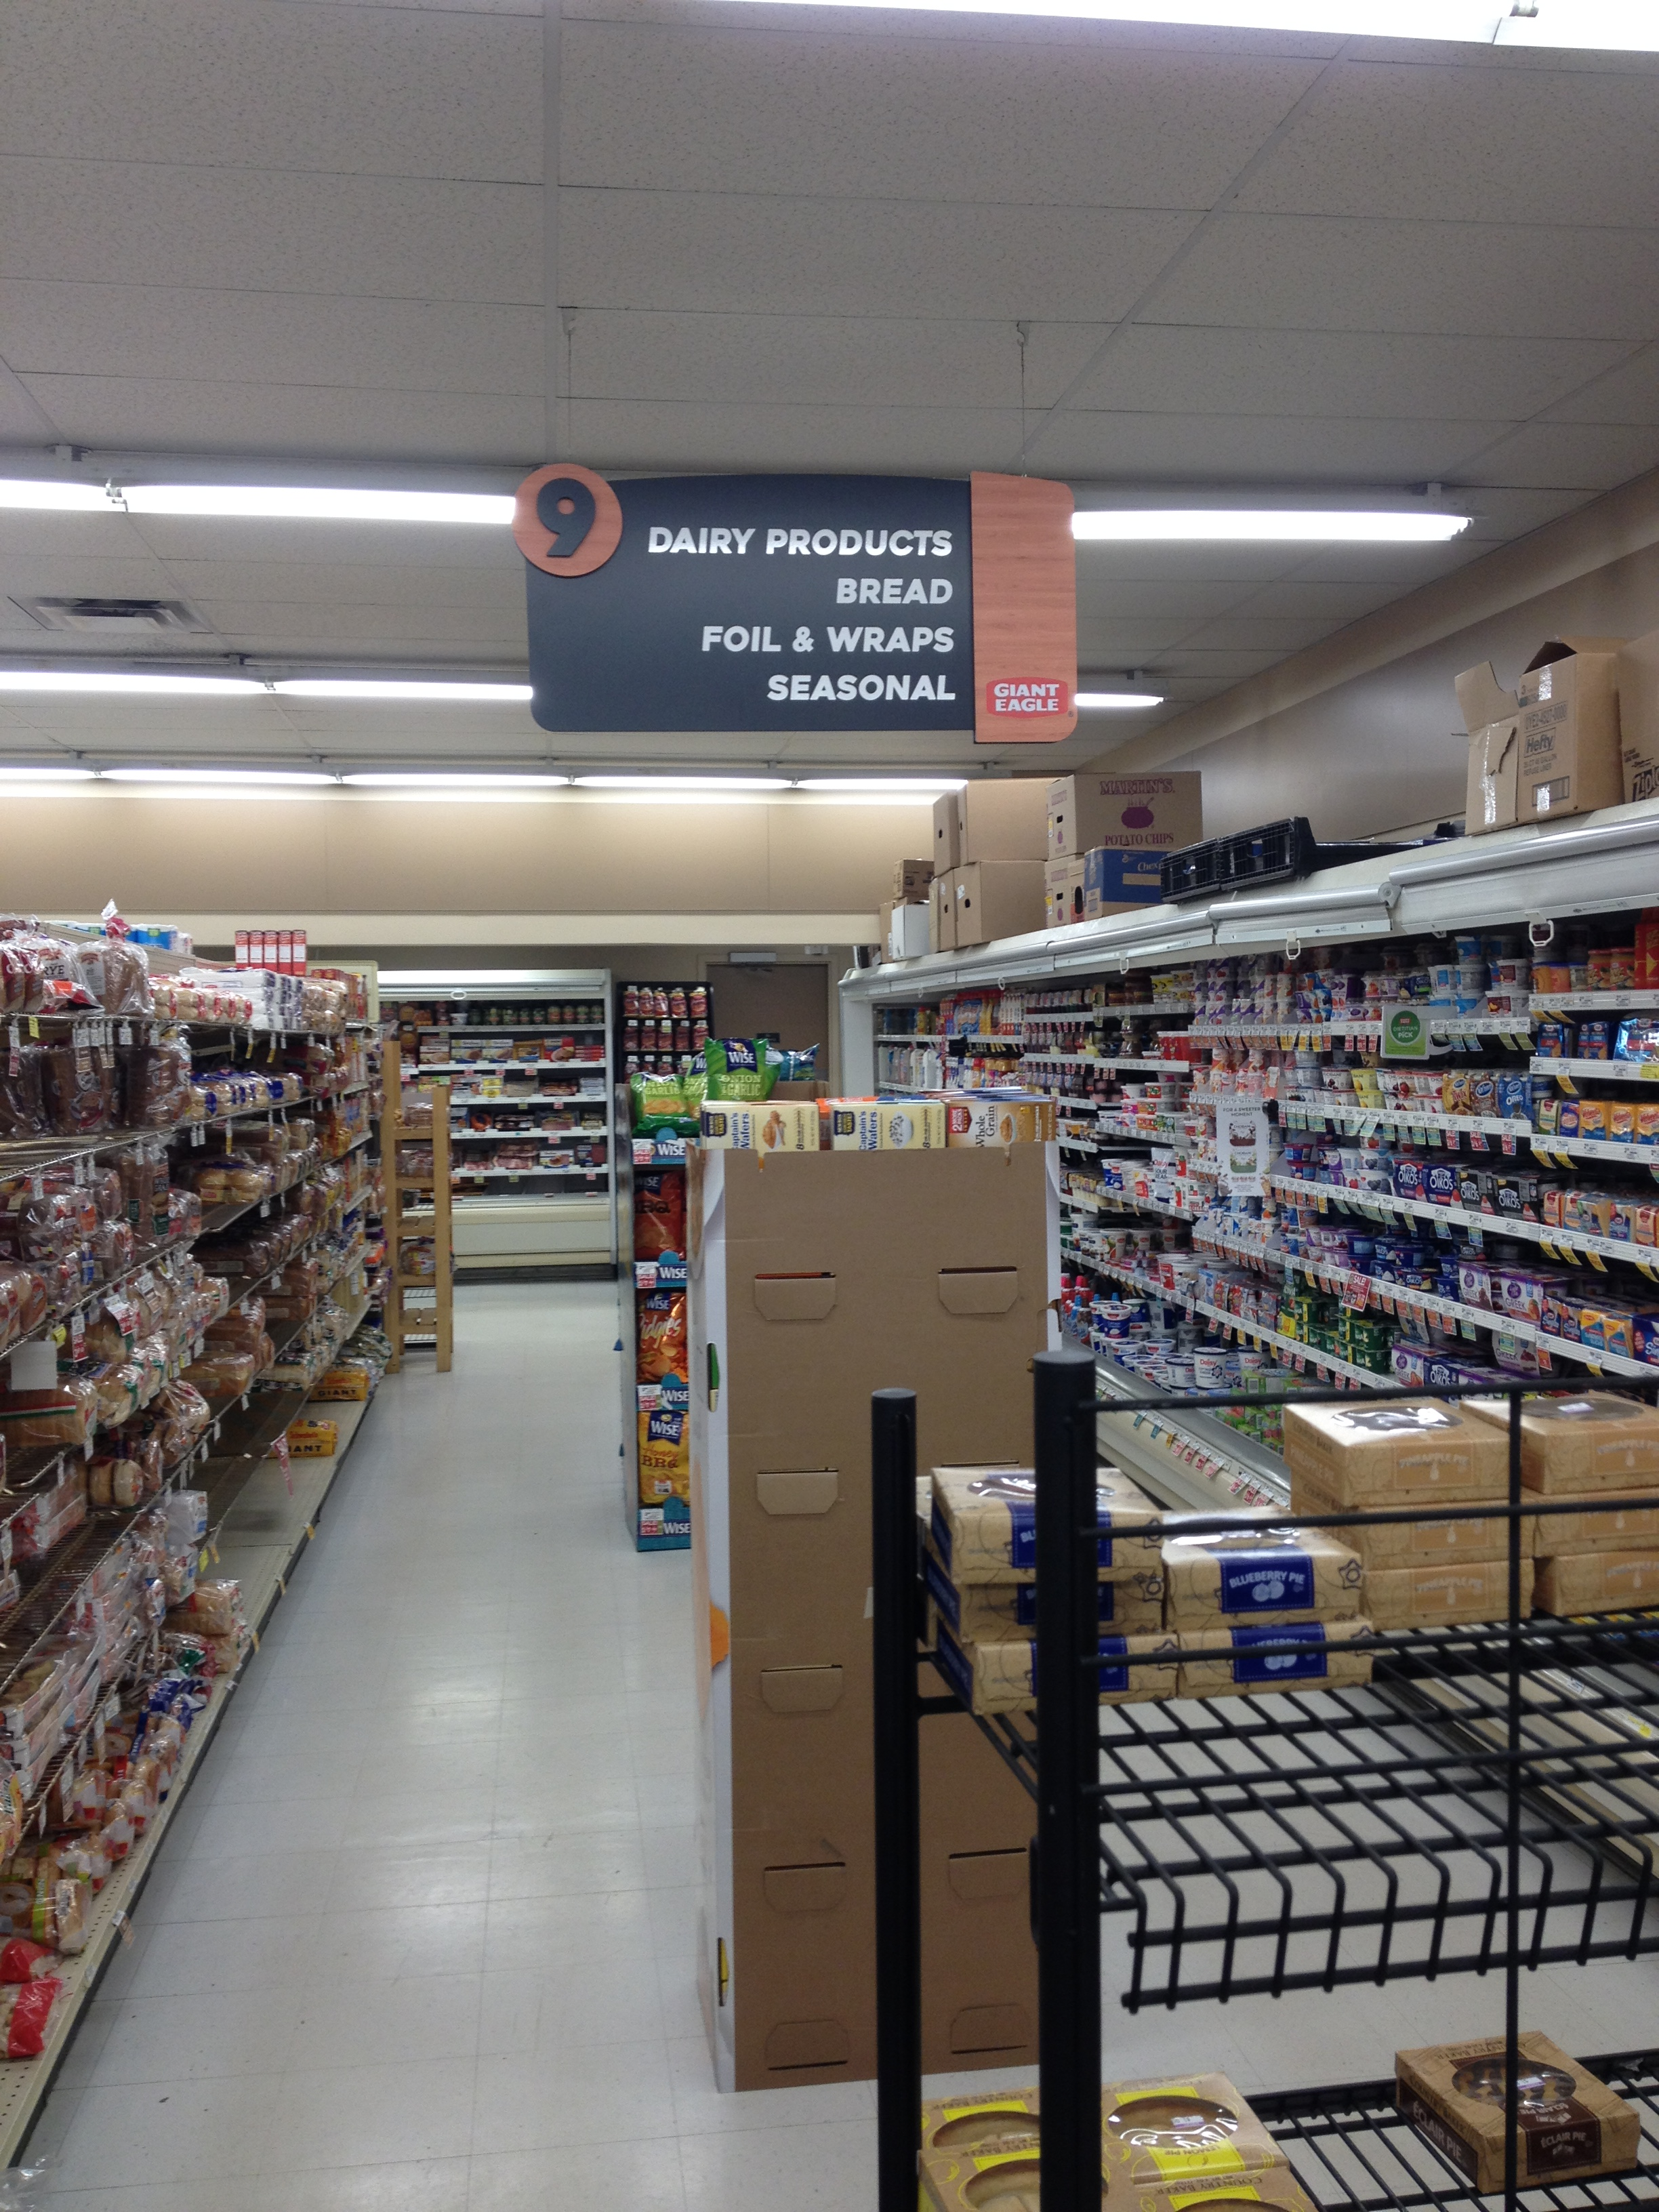 Interior Grocery Signs - The Sign Artist